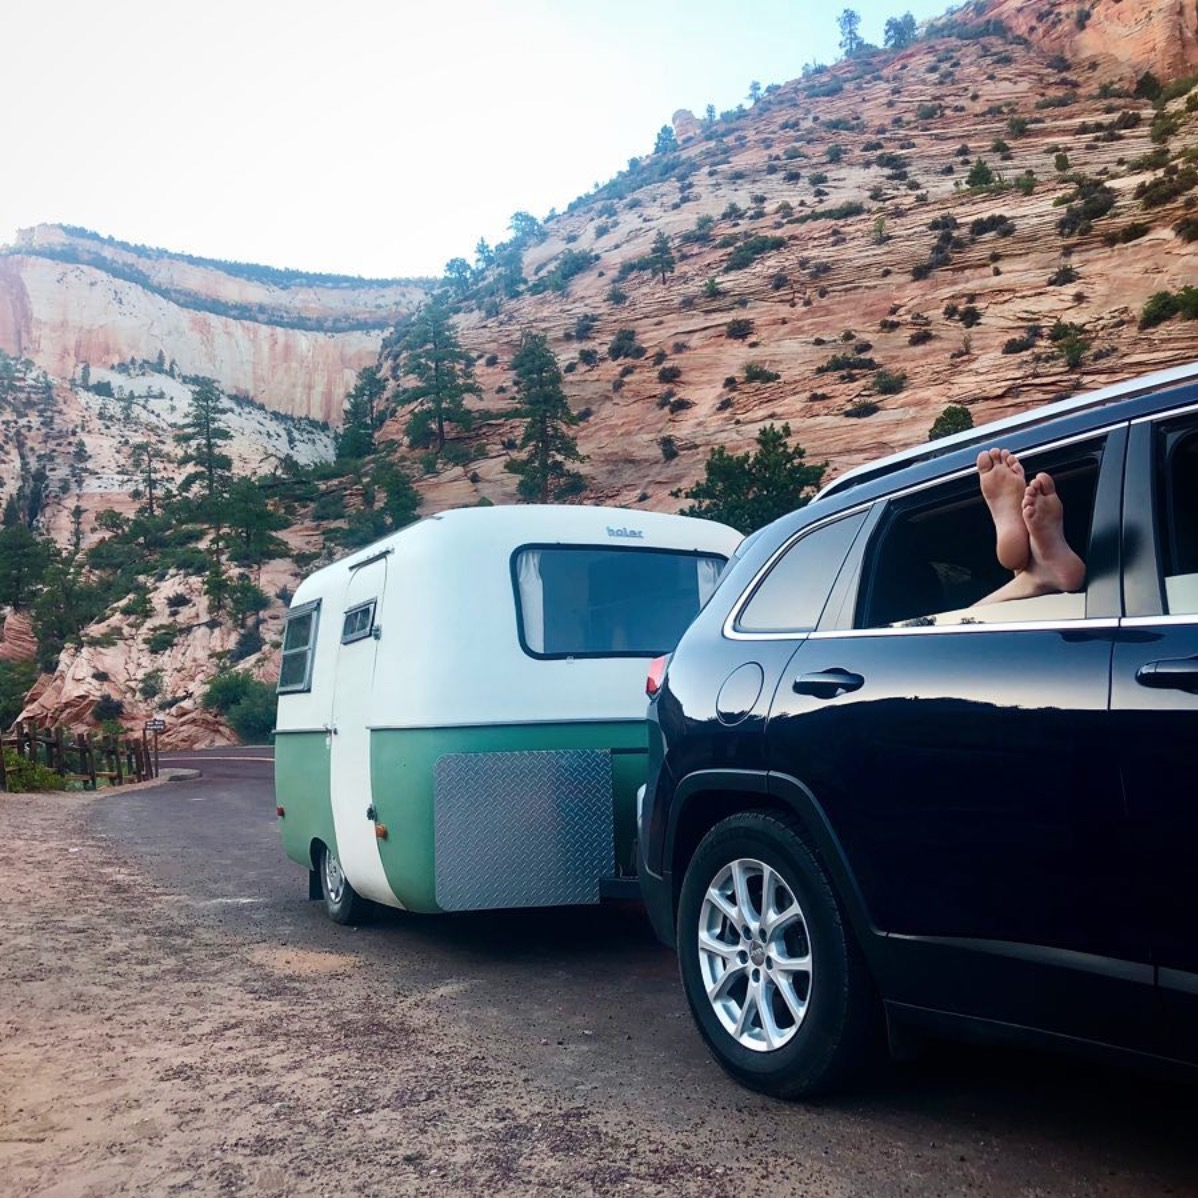 JUNE 2018   Have Boler, Will Travel became Kathy and Brian's catchphrase as they load up their two teenagers and head out on a 14-state camping trip in their Boler, the fiberglass trailer they bought a few winters back.